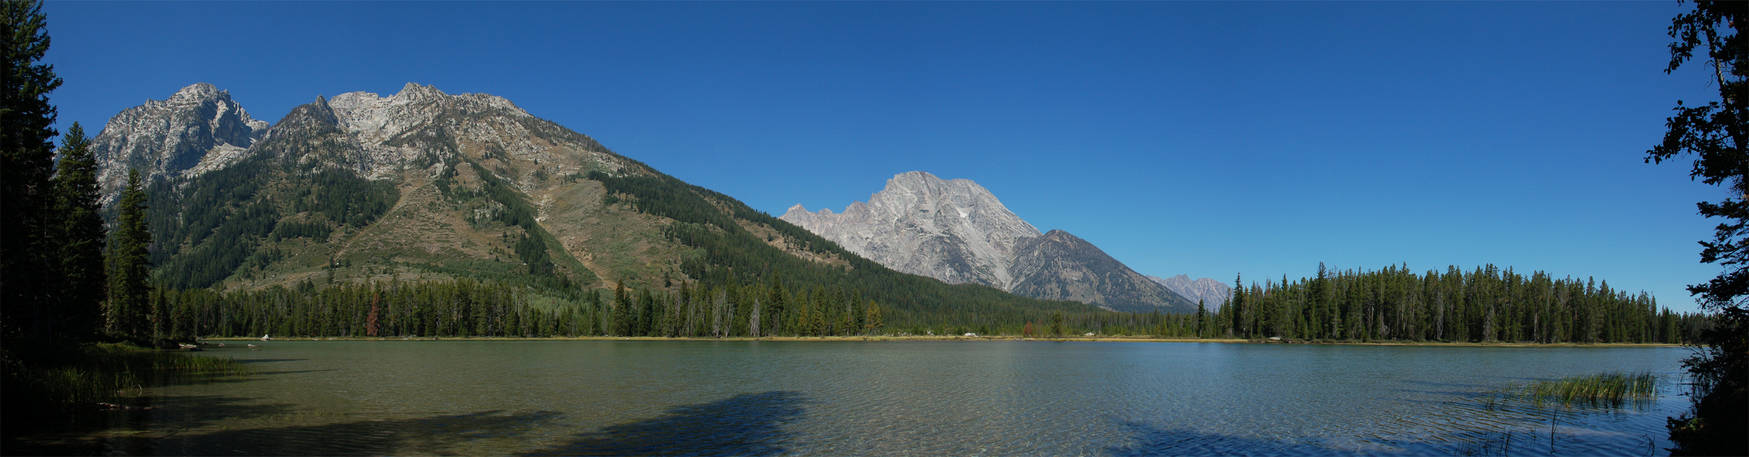 Teton String Lake 2 2007-08-25